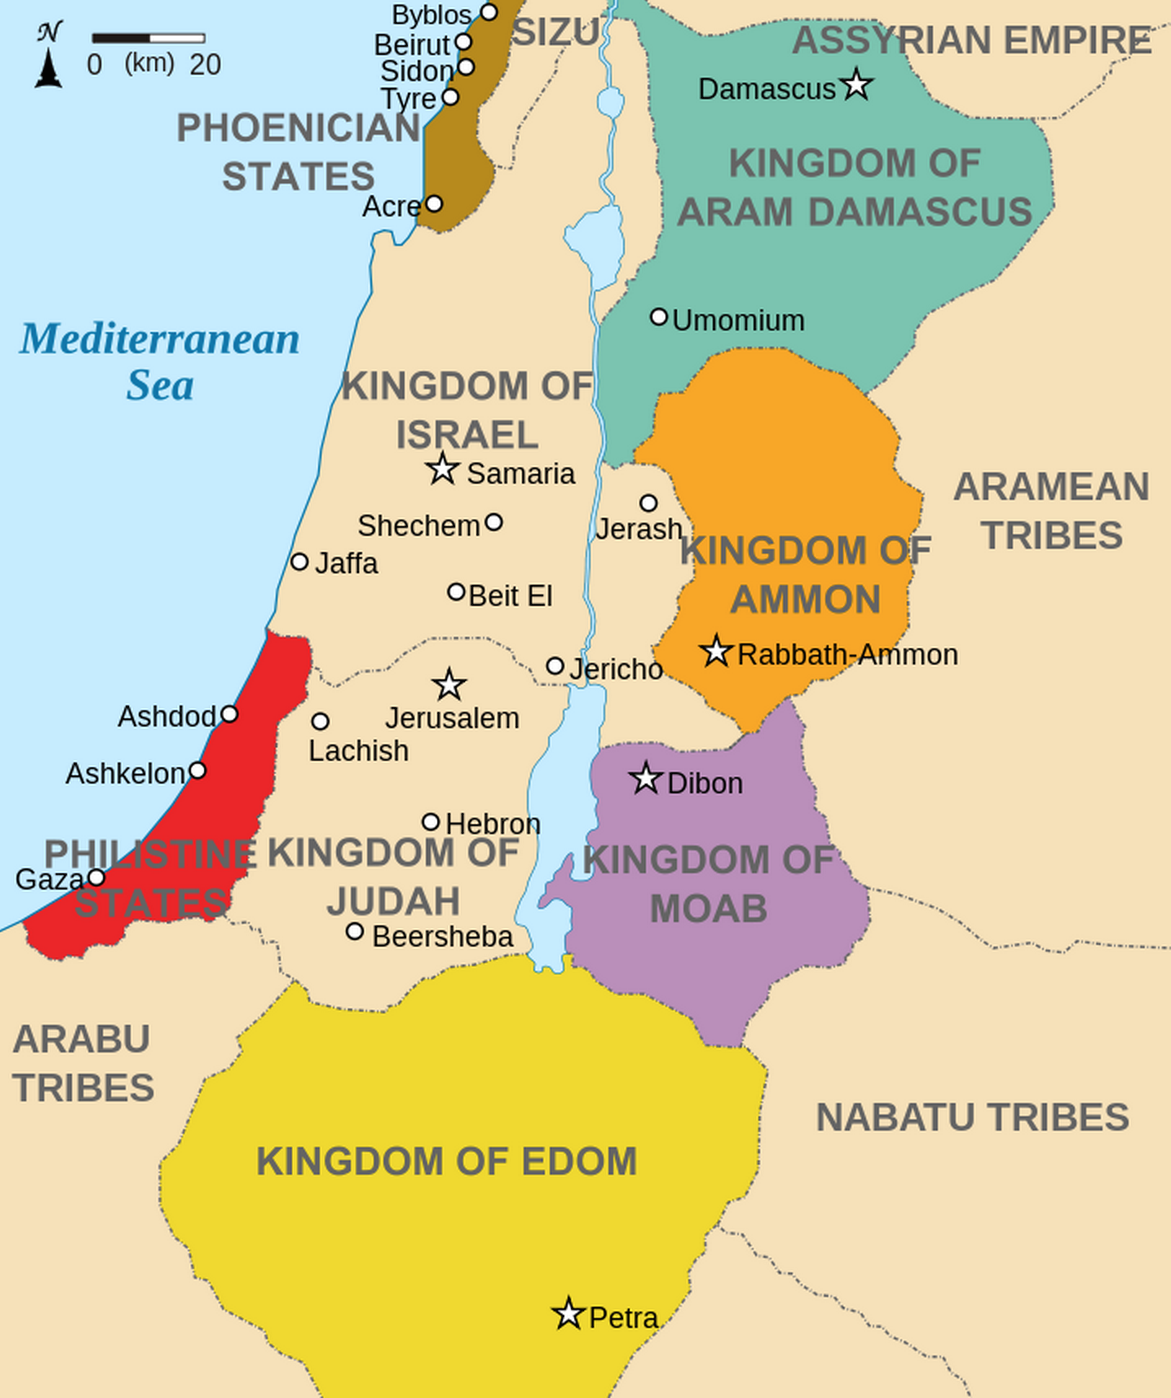 Kingdoms around Israel 830 map. Licensed under Creative Commons Attribution-Share Alike 3.0 via Wikimedia Commons.